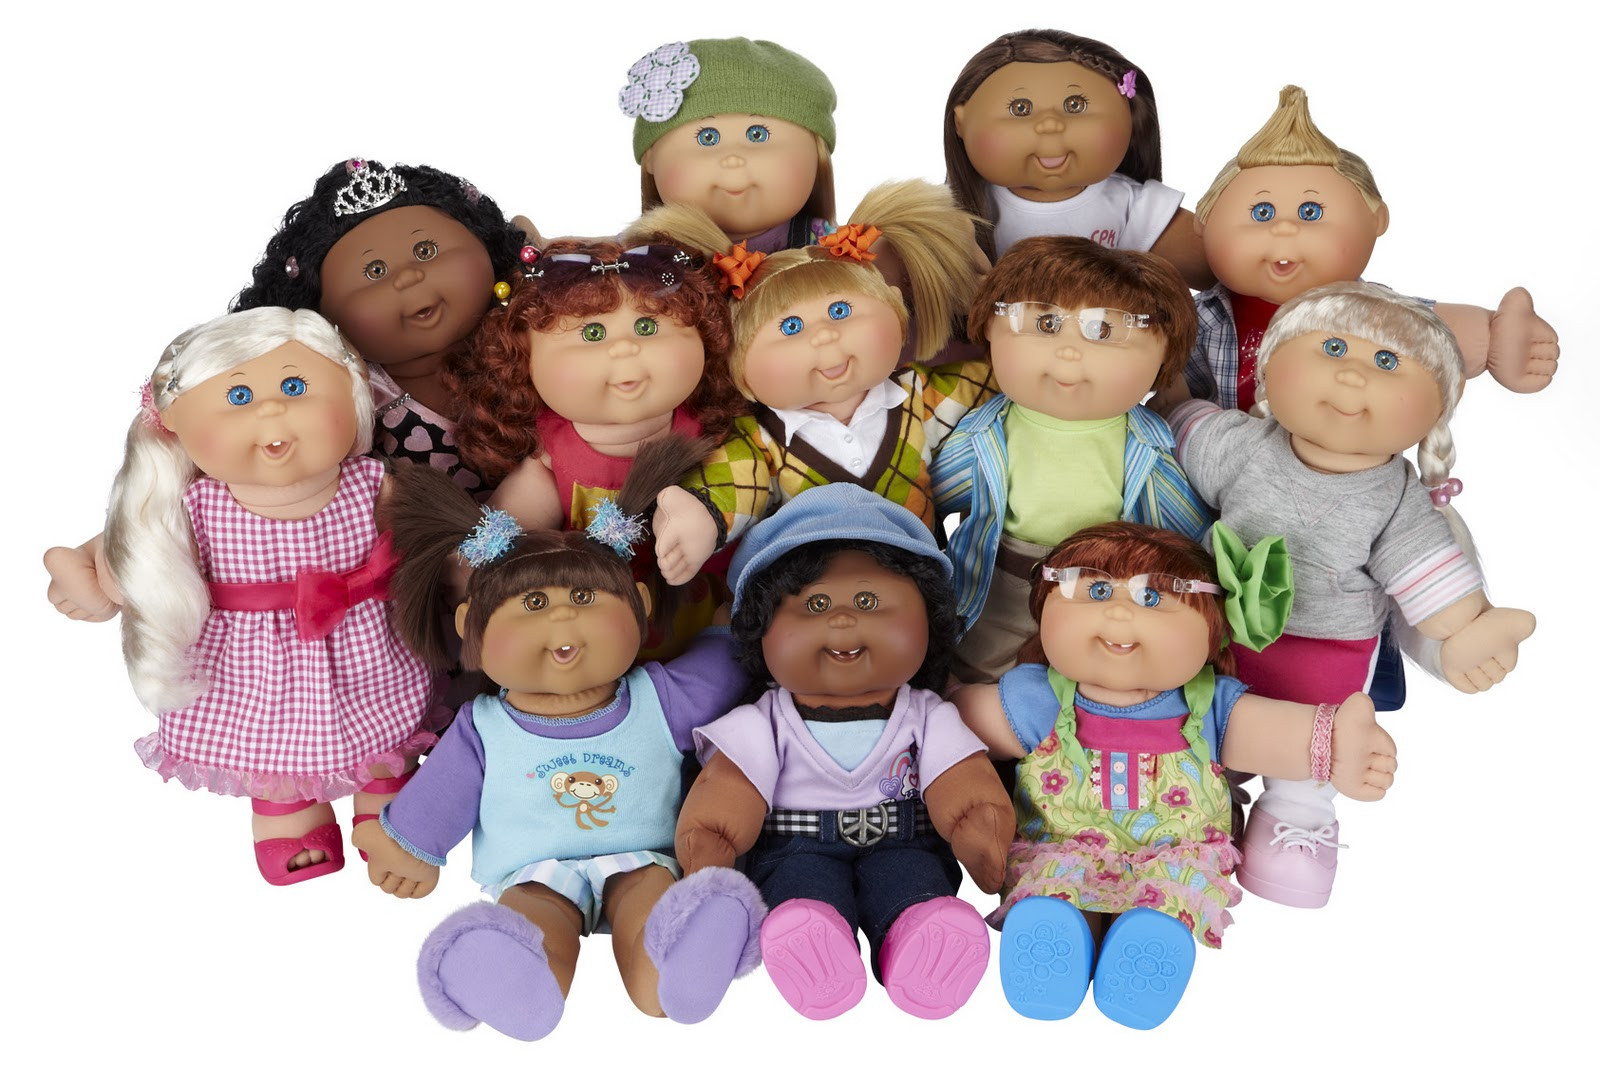 Cabbage Patch Doll Luxury the Grandma Chronicles October 2011 Of Superb 40 Models Cabbage Patch Doll